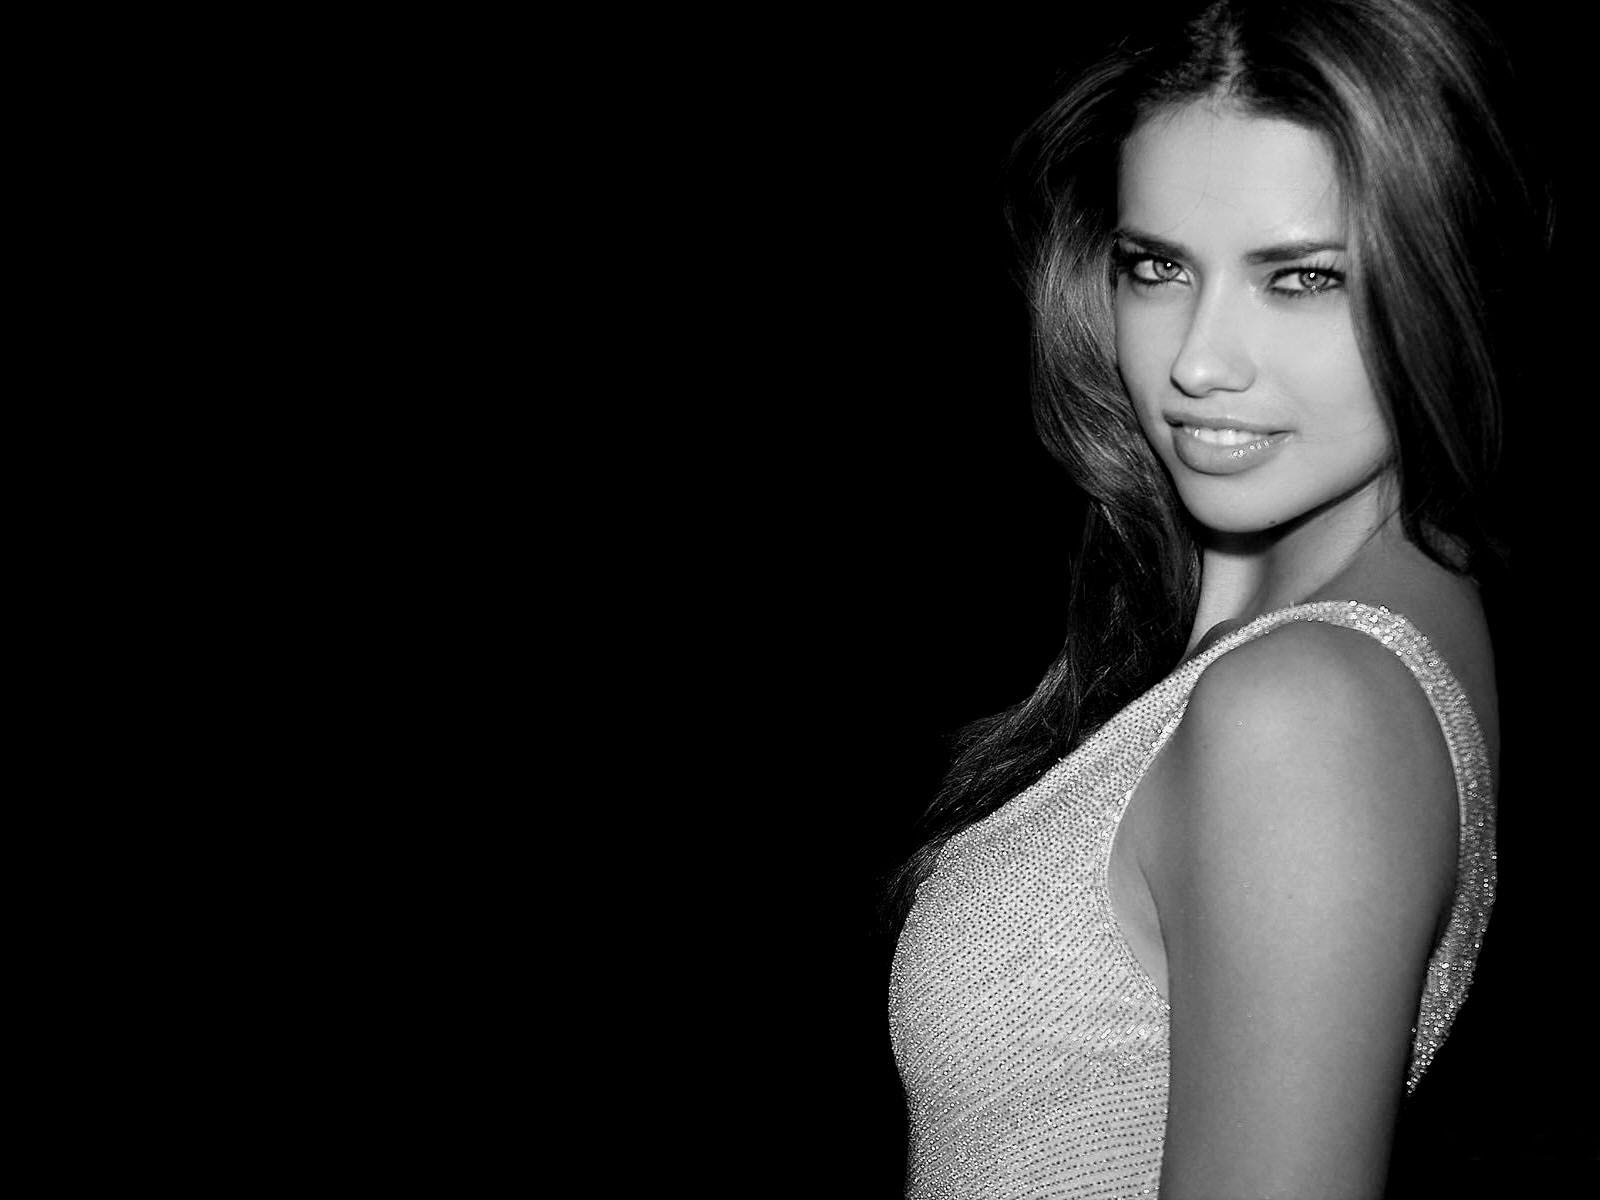 http://2.bp.blogspot.com/-OG_Q8x-xH_I/TyQZ6CdzBKI/AAAAAAAACmQ/d-906ZhV3e4/s1600/Adriana-Lima-Wallpapers-Windows-7-2.jpg